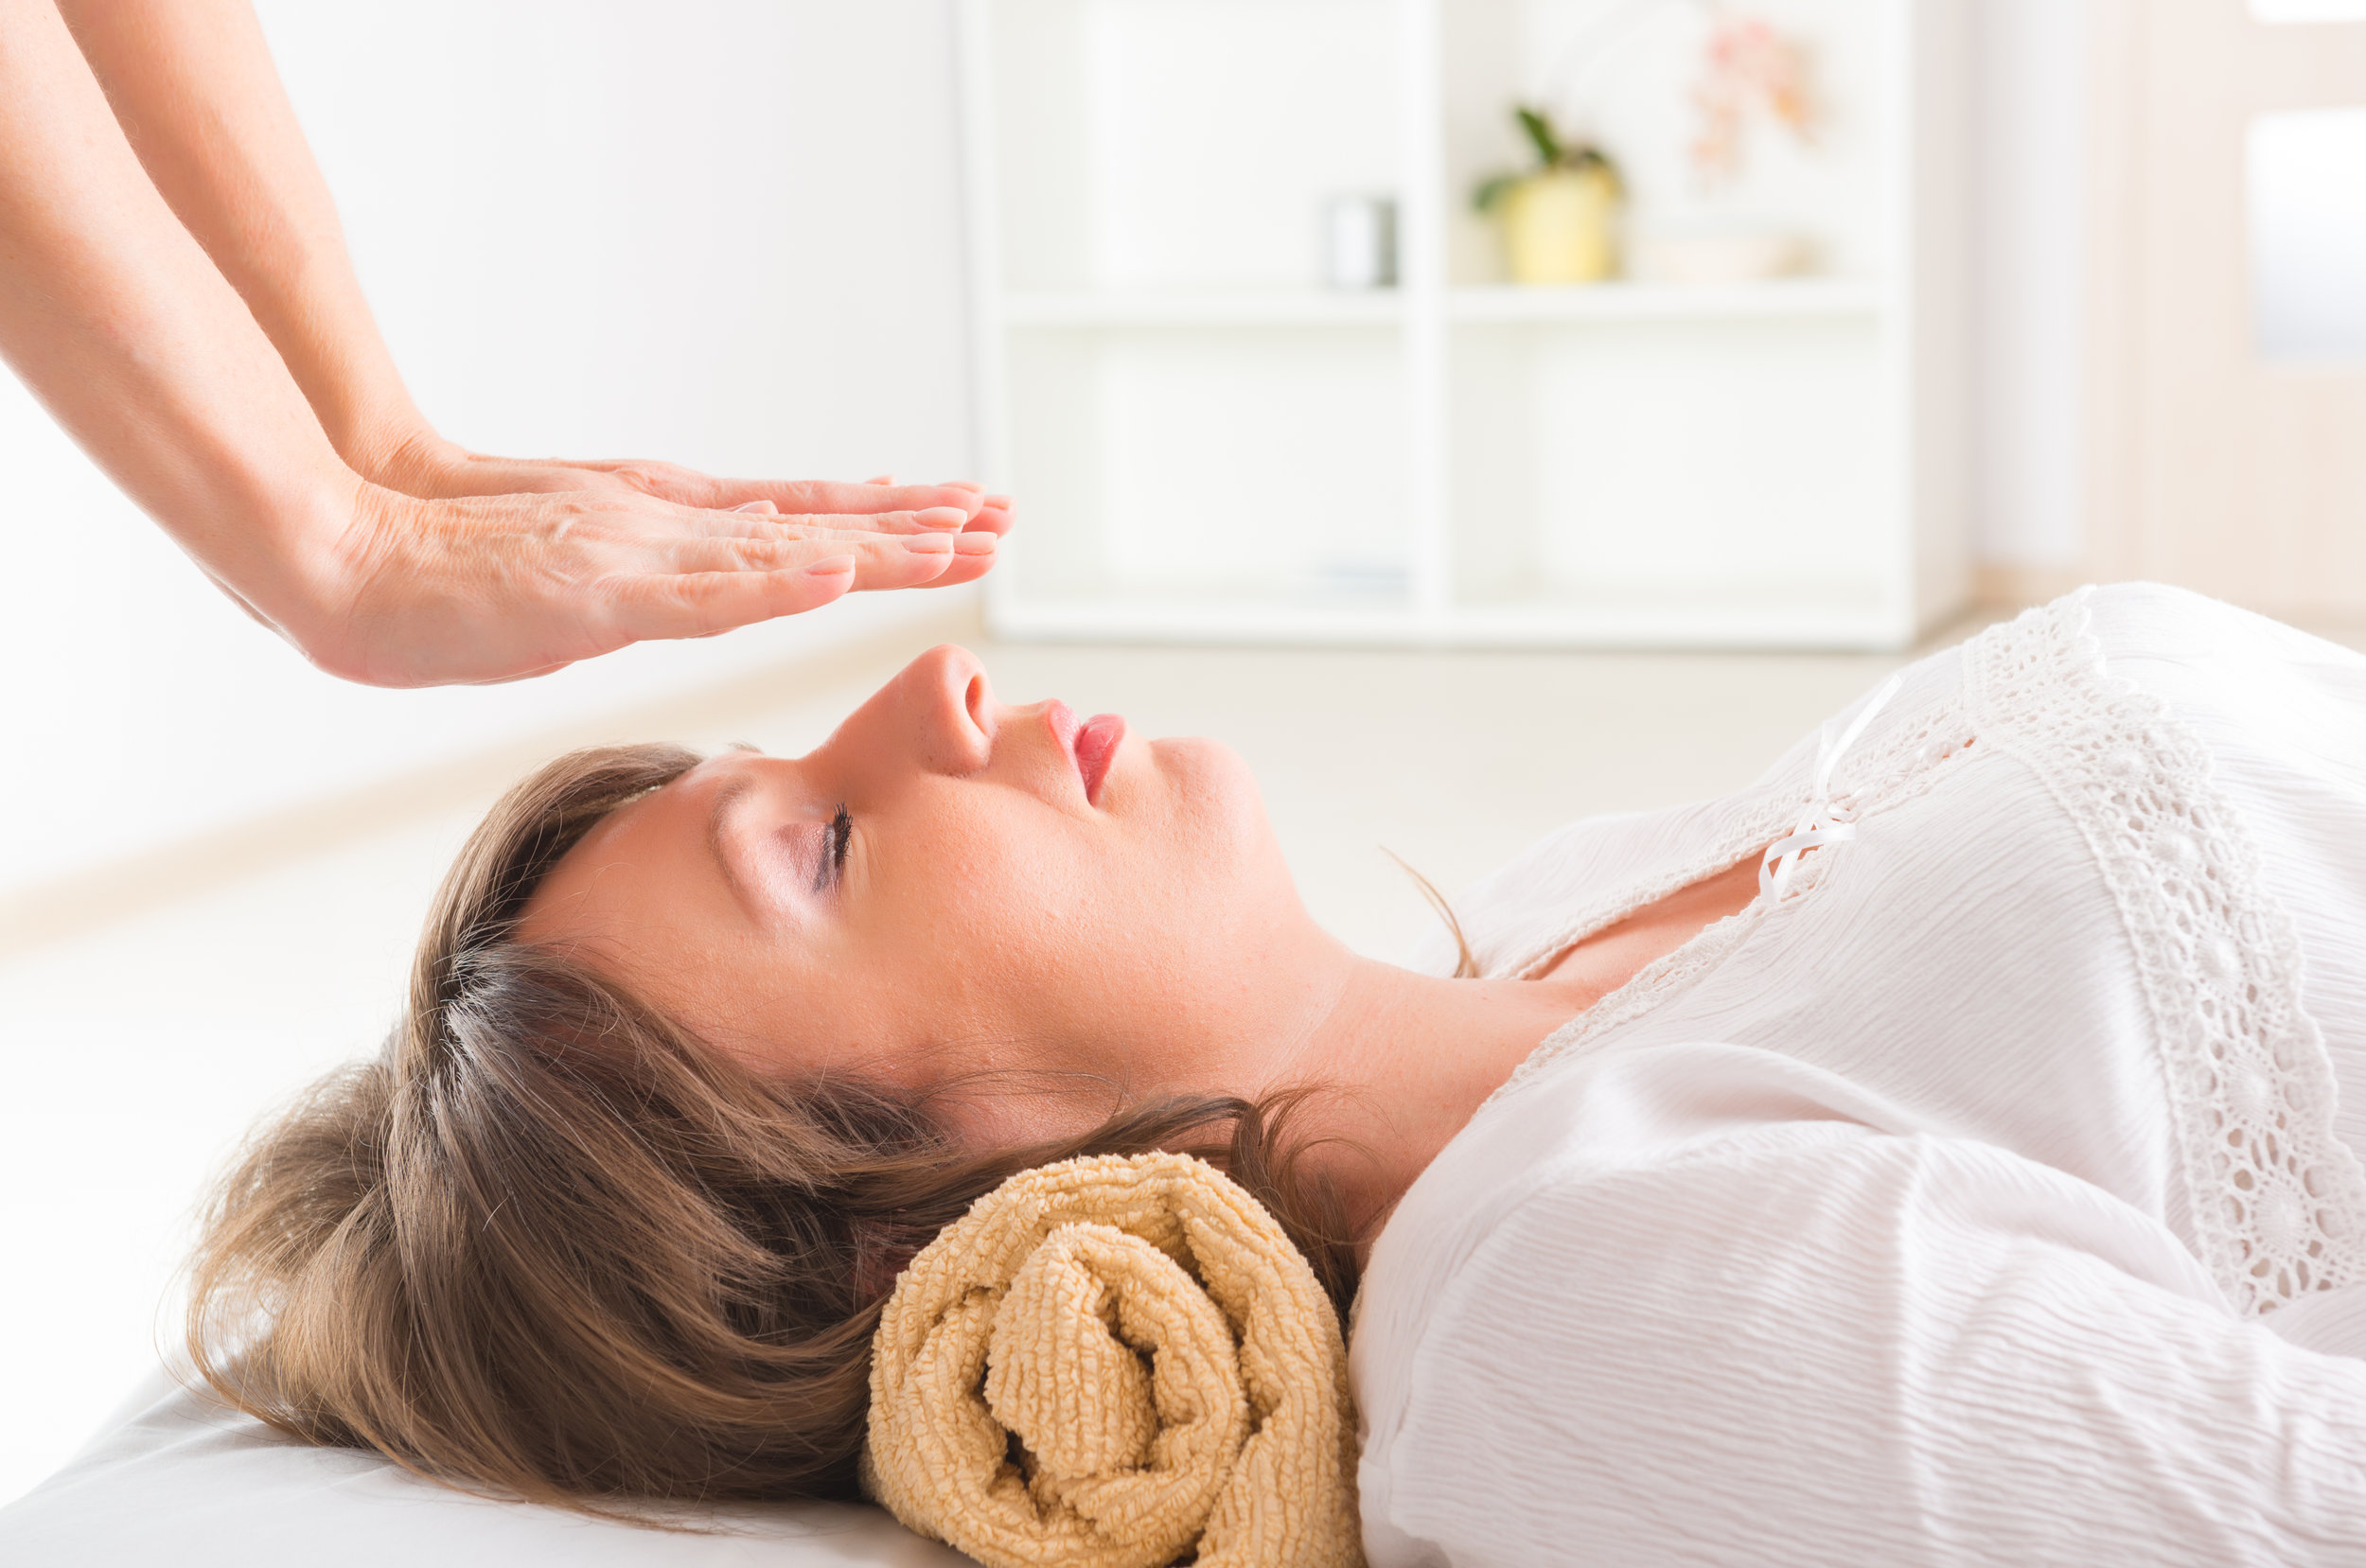 UO Cosmic Love Reiki Healing £40 25 mins - Our attuned therapist's channel natural healing energies starting at the head and flowing to the toes. Ease your body, mind and soul into a restful state and stimulate your own healing process. If you've never experienced reiki we highly recommend that you try it as the results can be profound and the experience deeply relaxing.